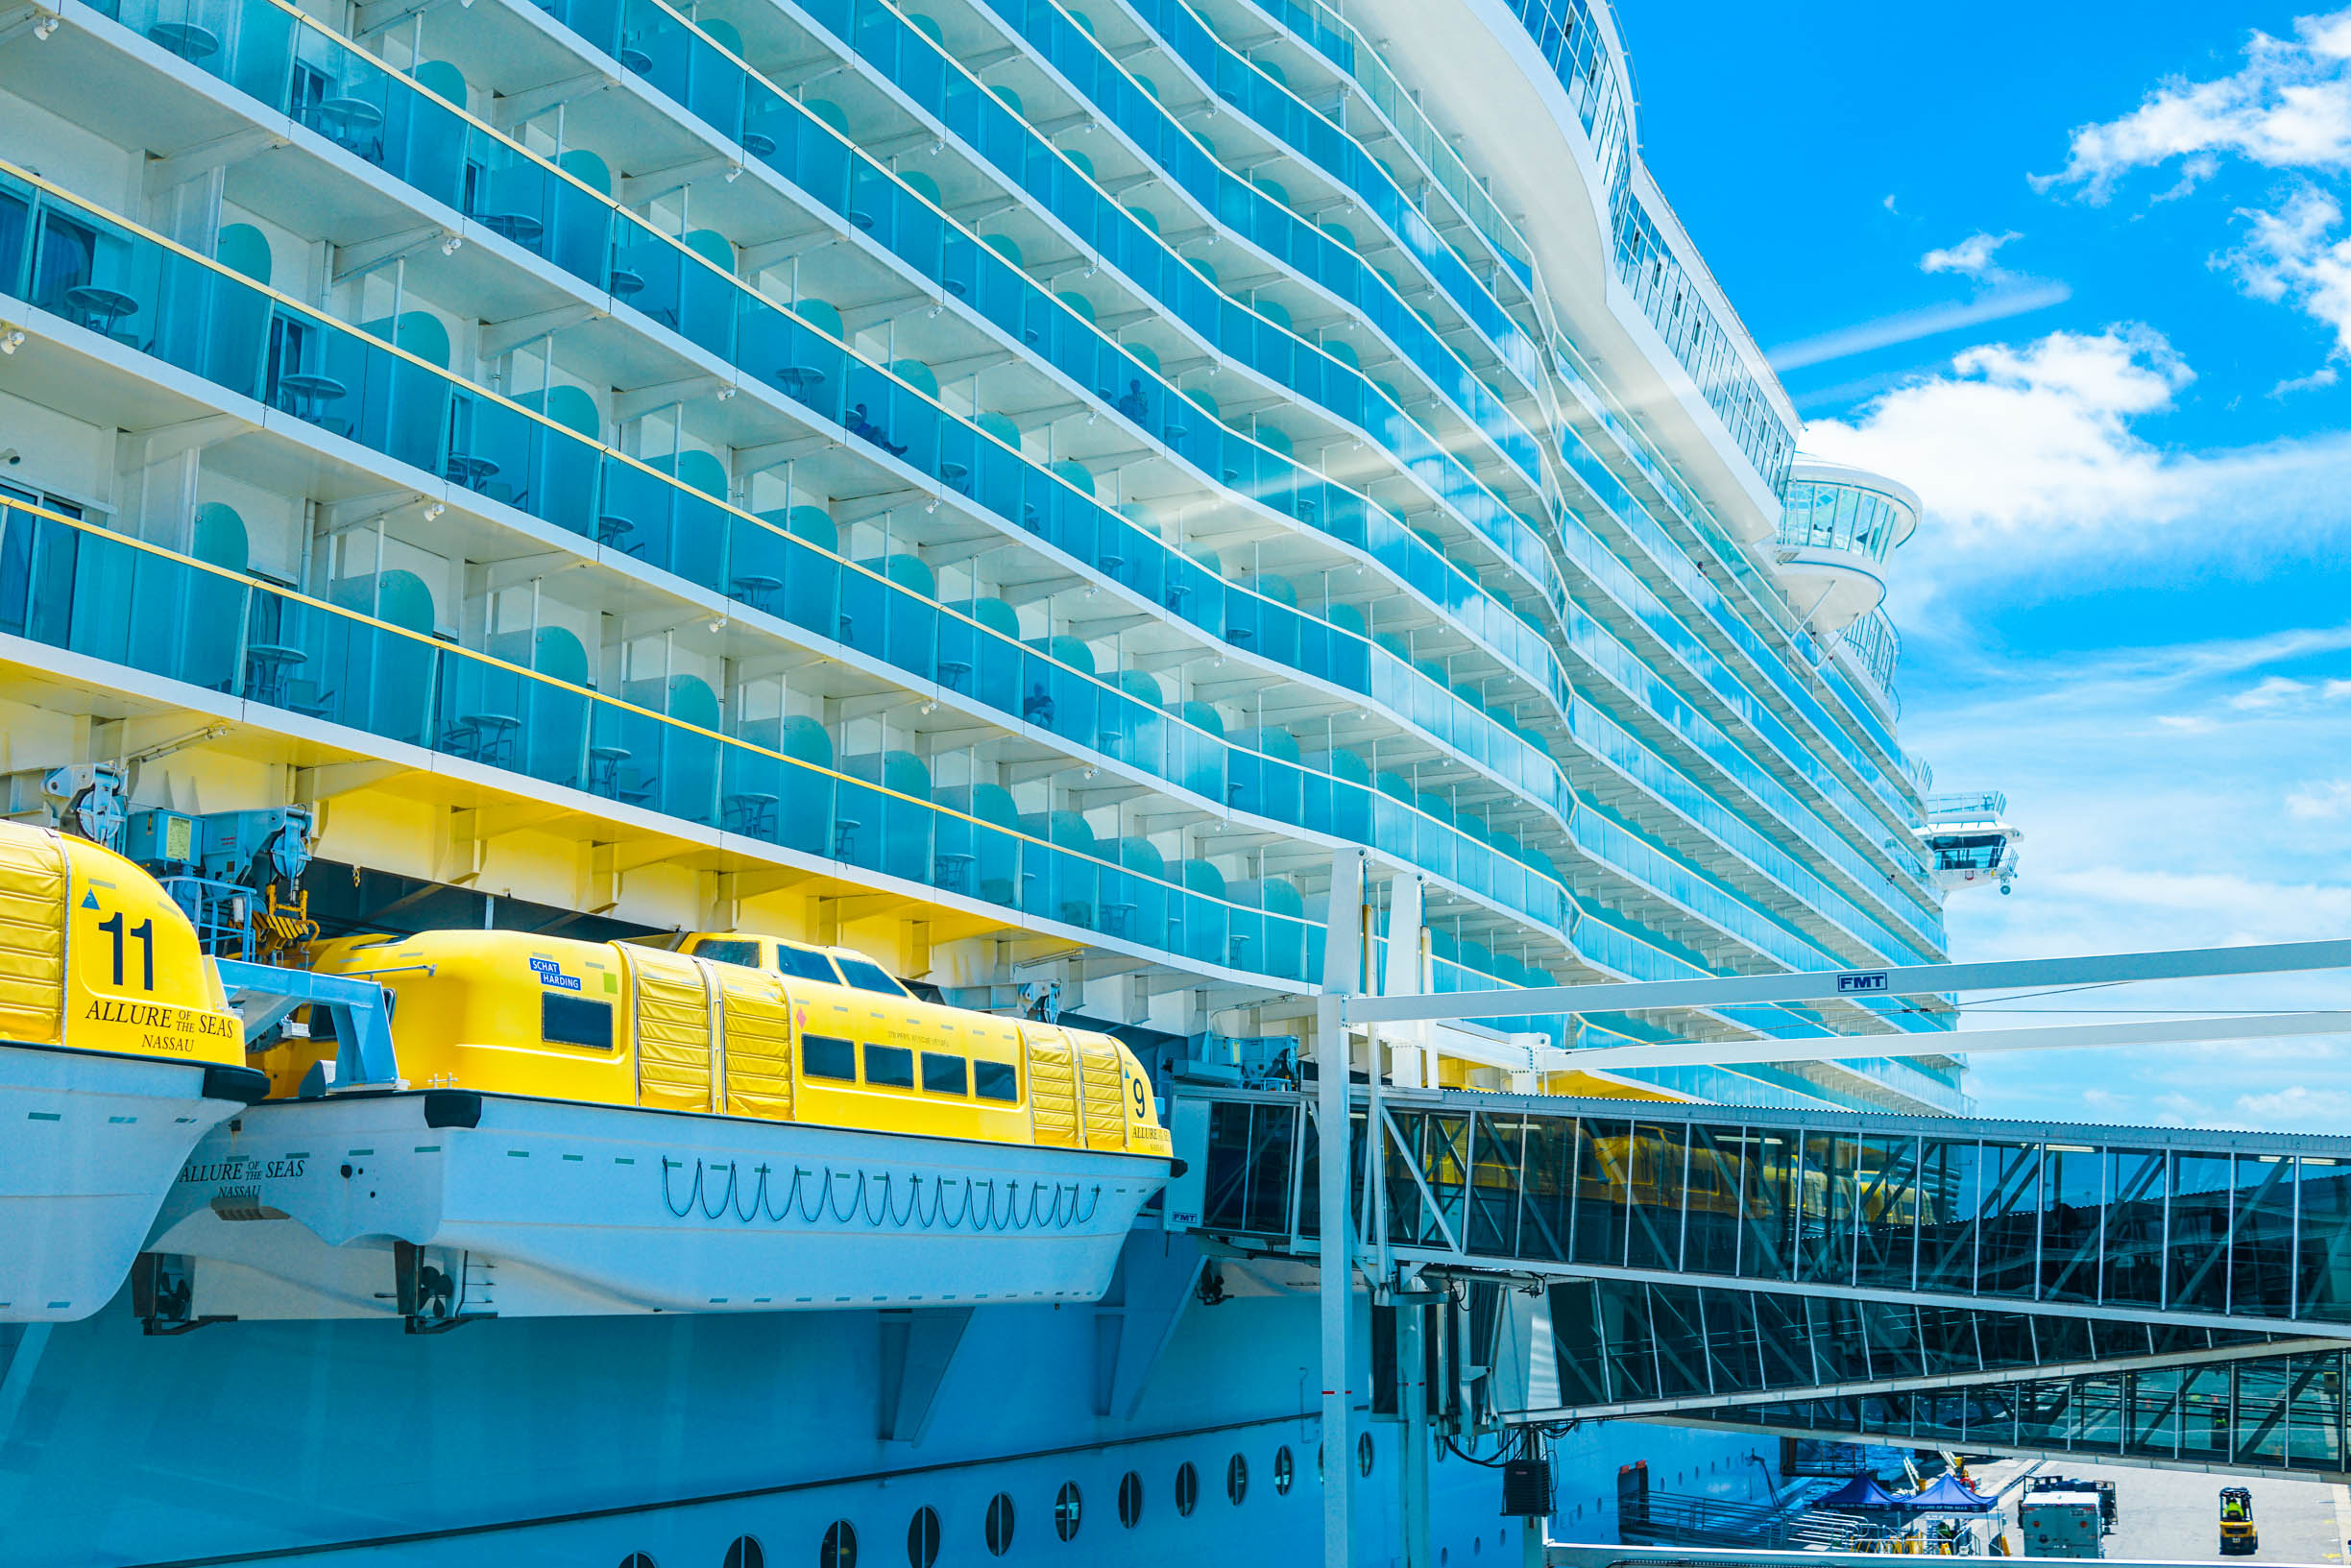 �'Ҽ��ձ����� Royal Caribbean Cruise ���������� Allure of the Seas ��ʯ������١���������ҹ�԰+�����ձȺ�����15���������� 2018��4��30�ձ������� �����ܵǴ� ���߱��:7718043011